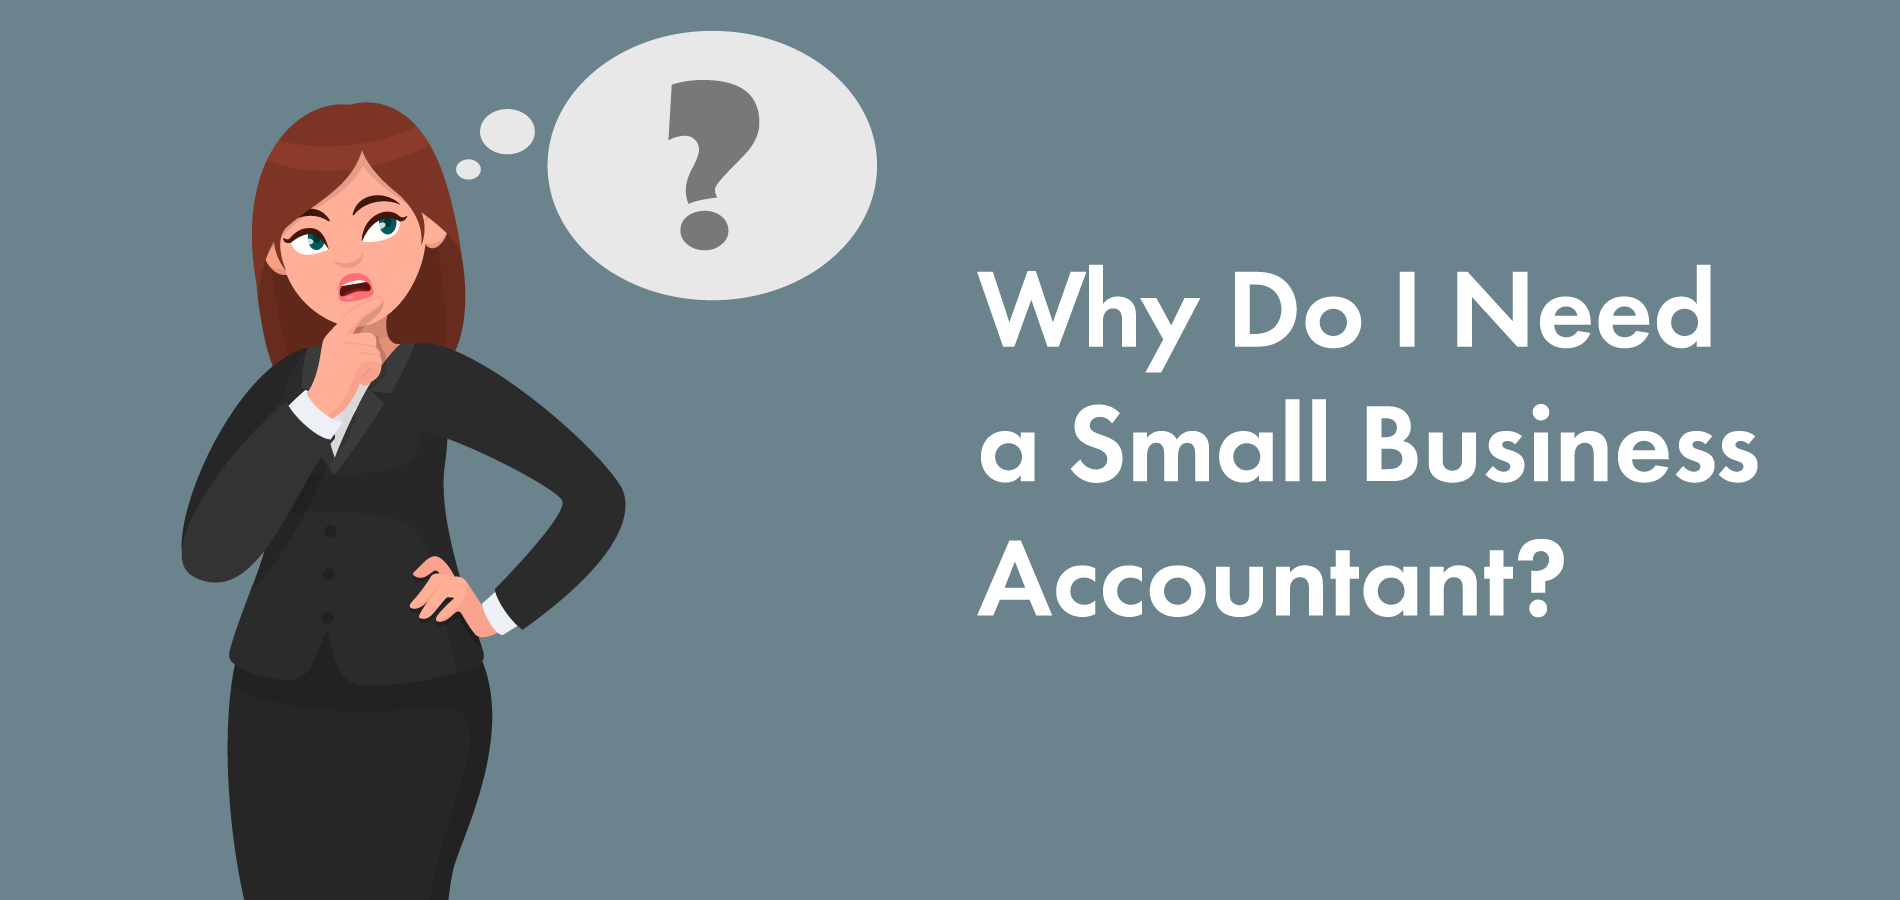 Why Do I Need a Small Business Accountant